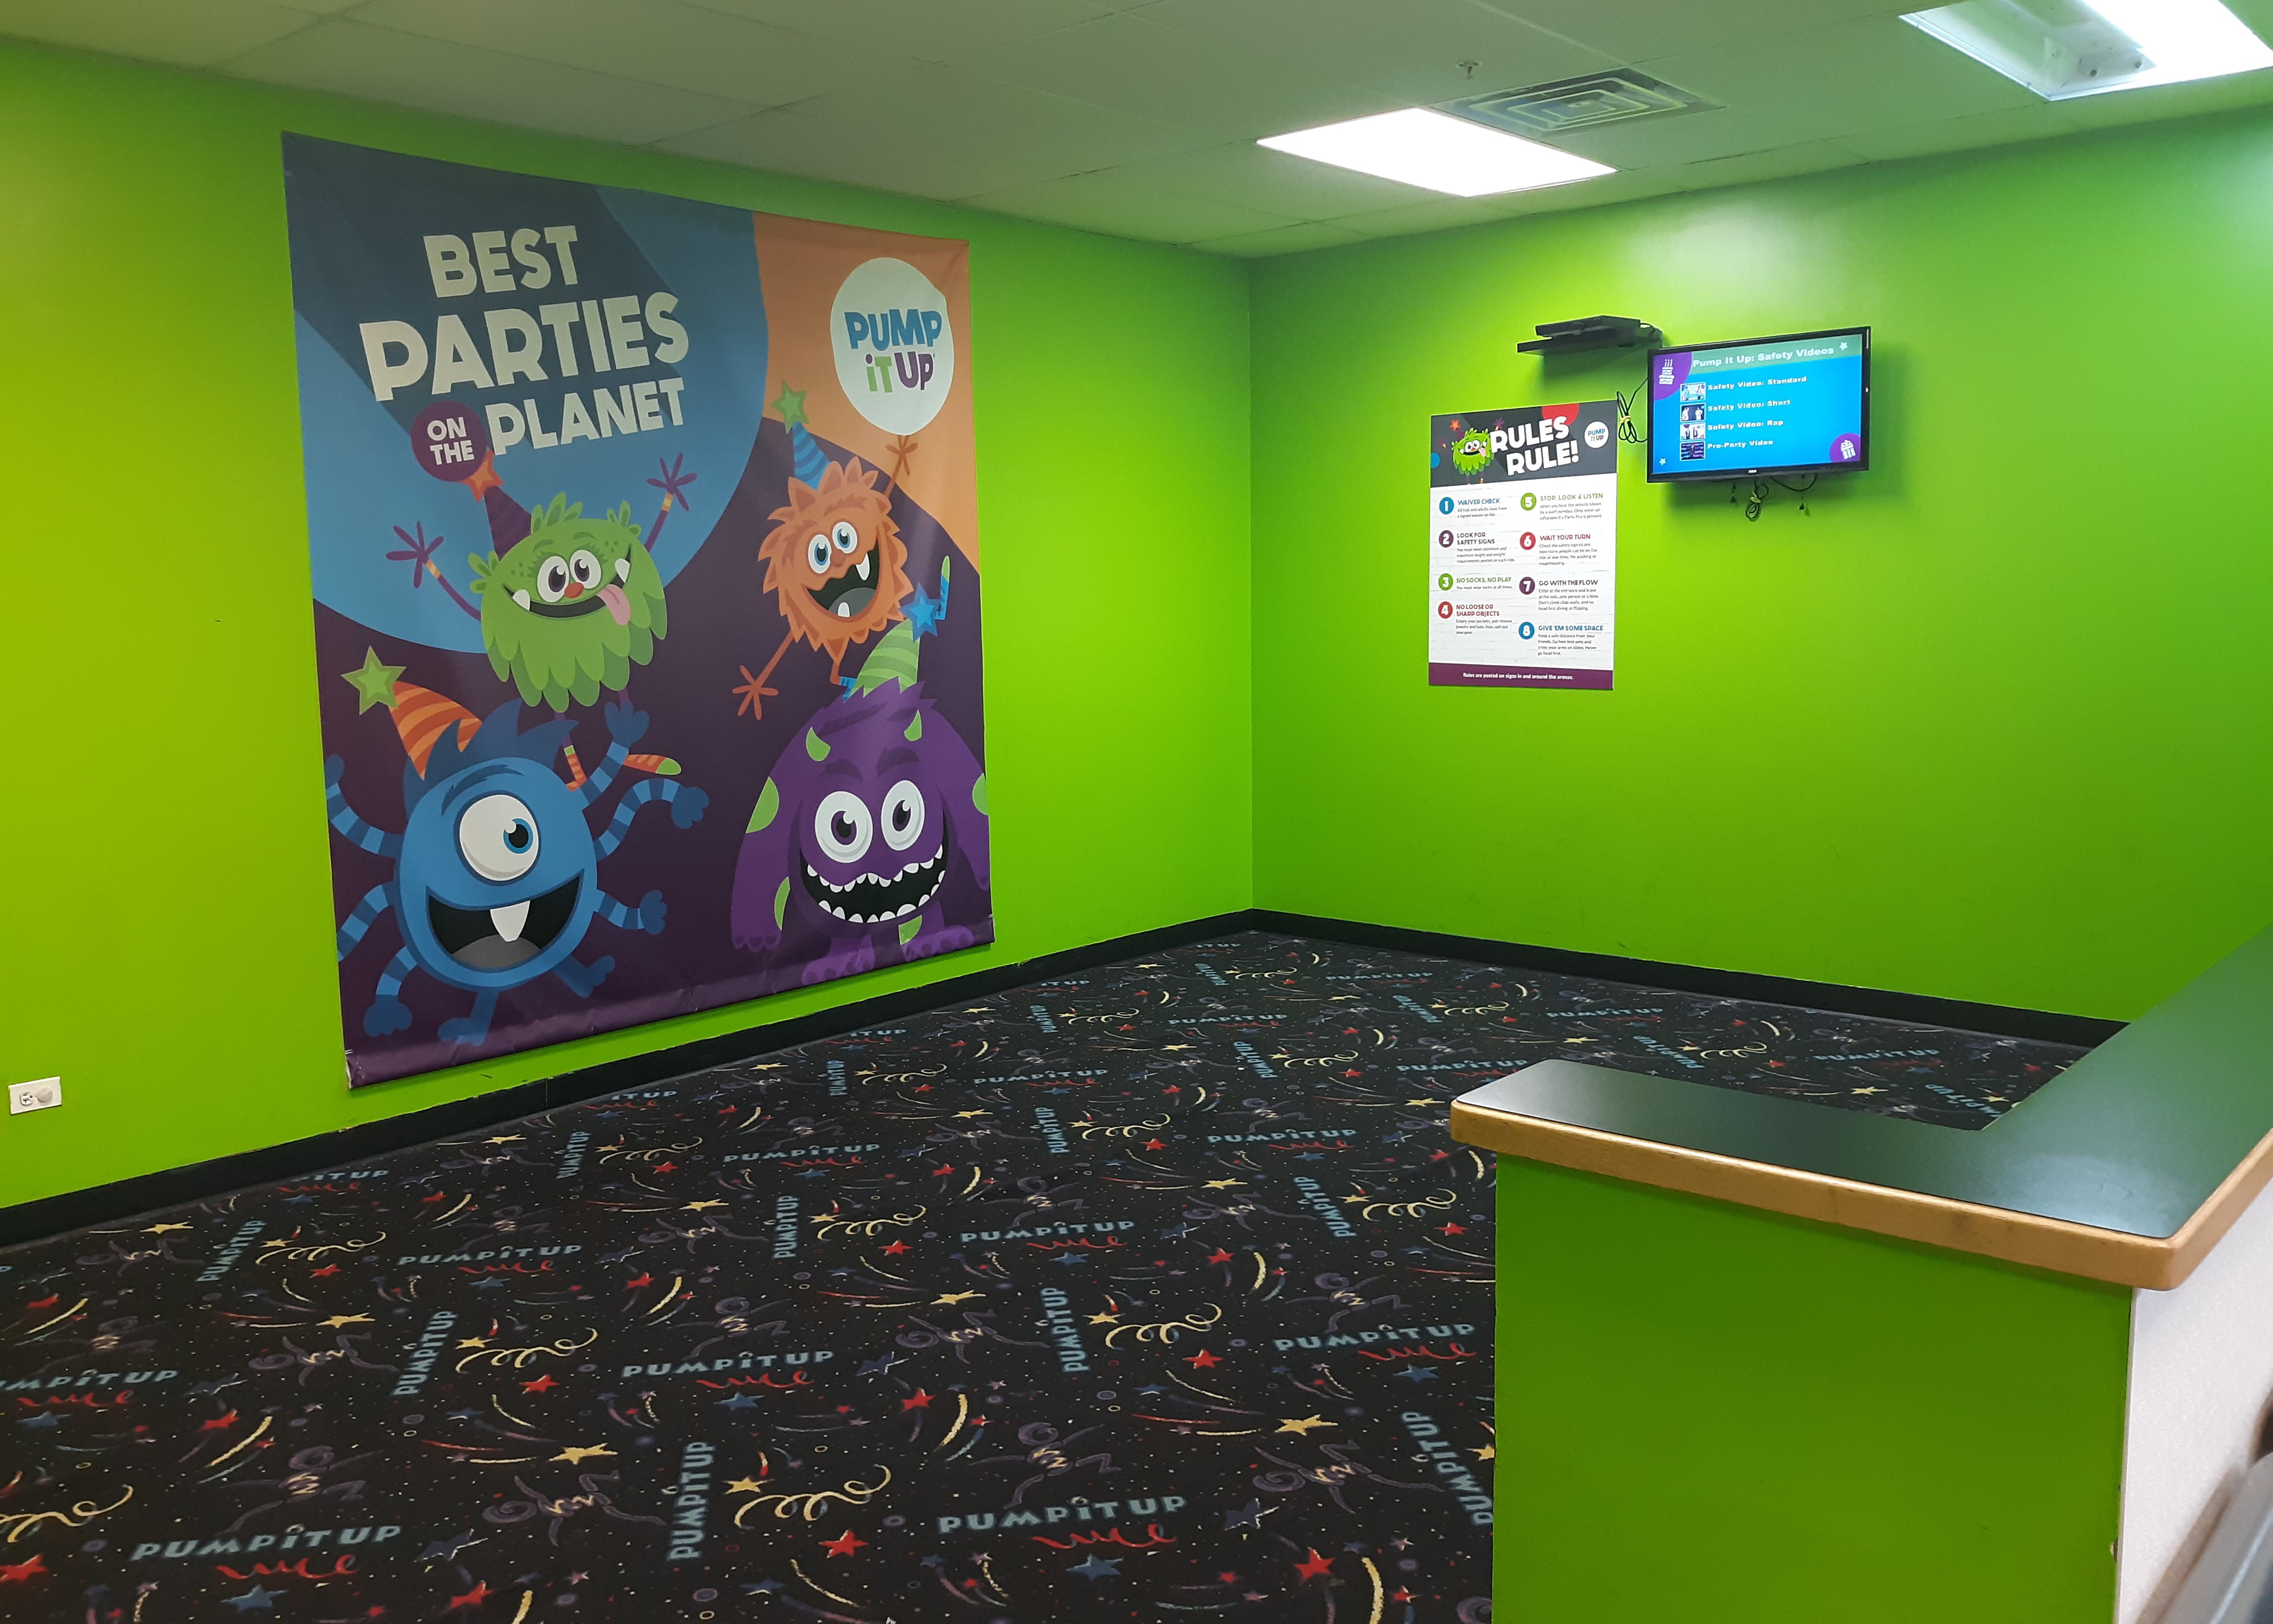 Pump It Up space for party guests with backdrop and tv for safety video.